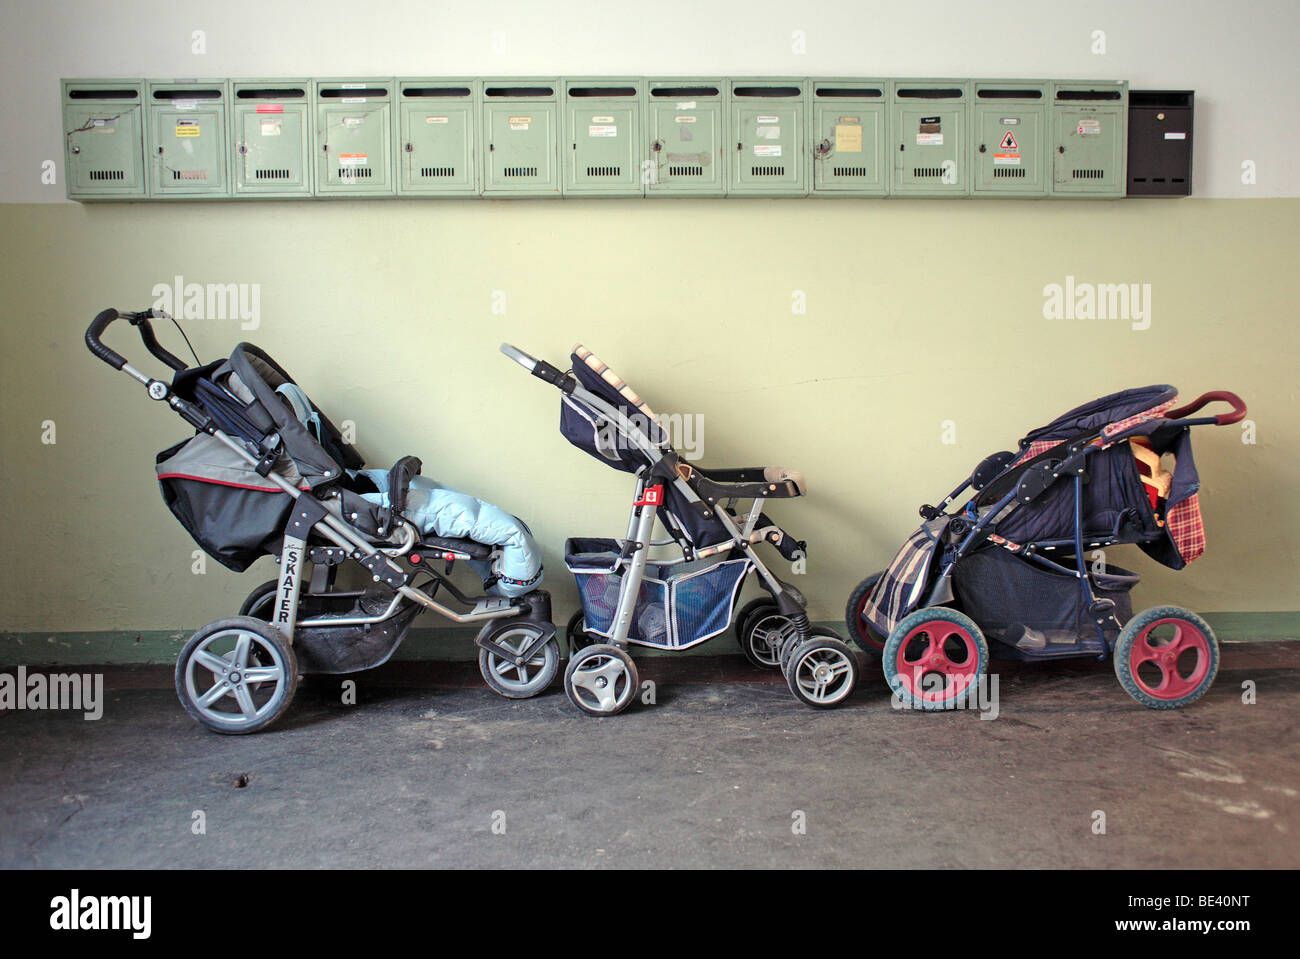 Kinderwagen im Hauseingang eines Mietshauses in Muenchen PERAMBULATOR INFRONT OF LETTERBOXES Stock Photo